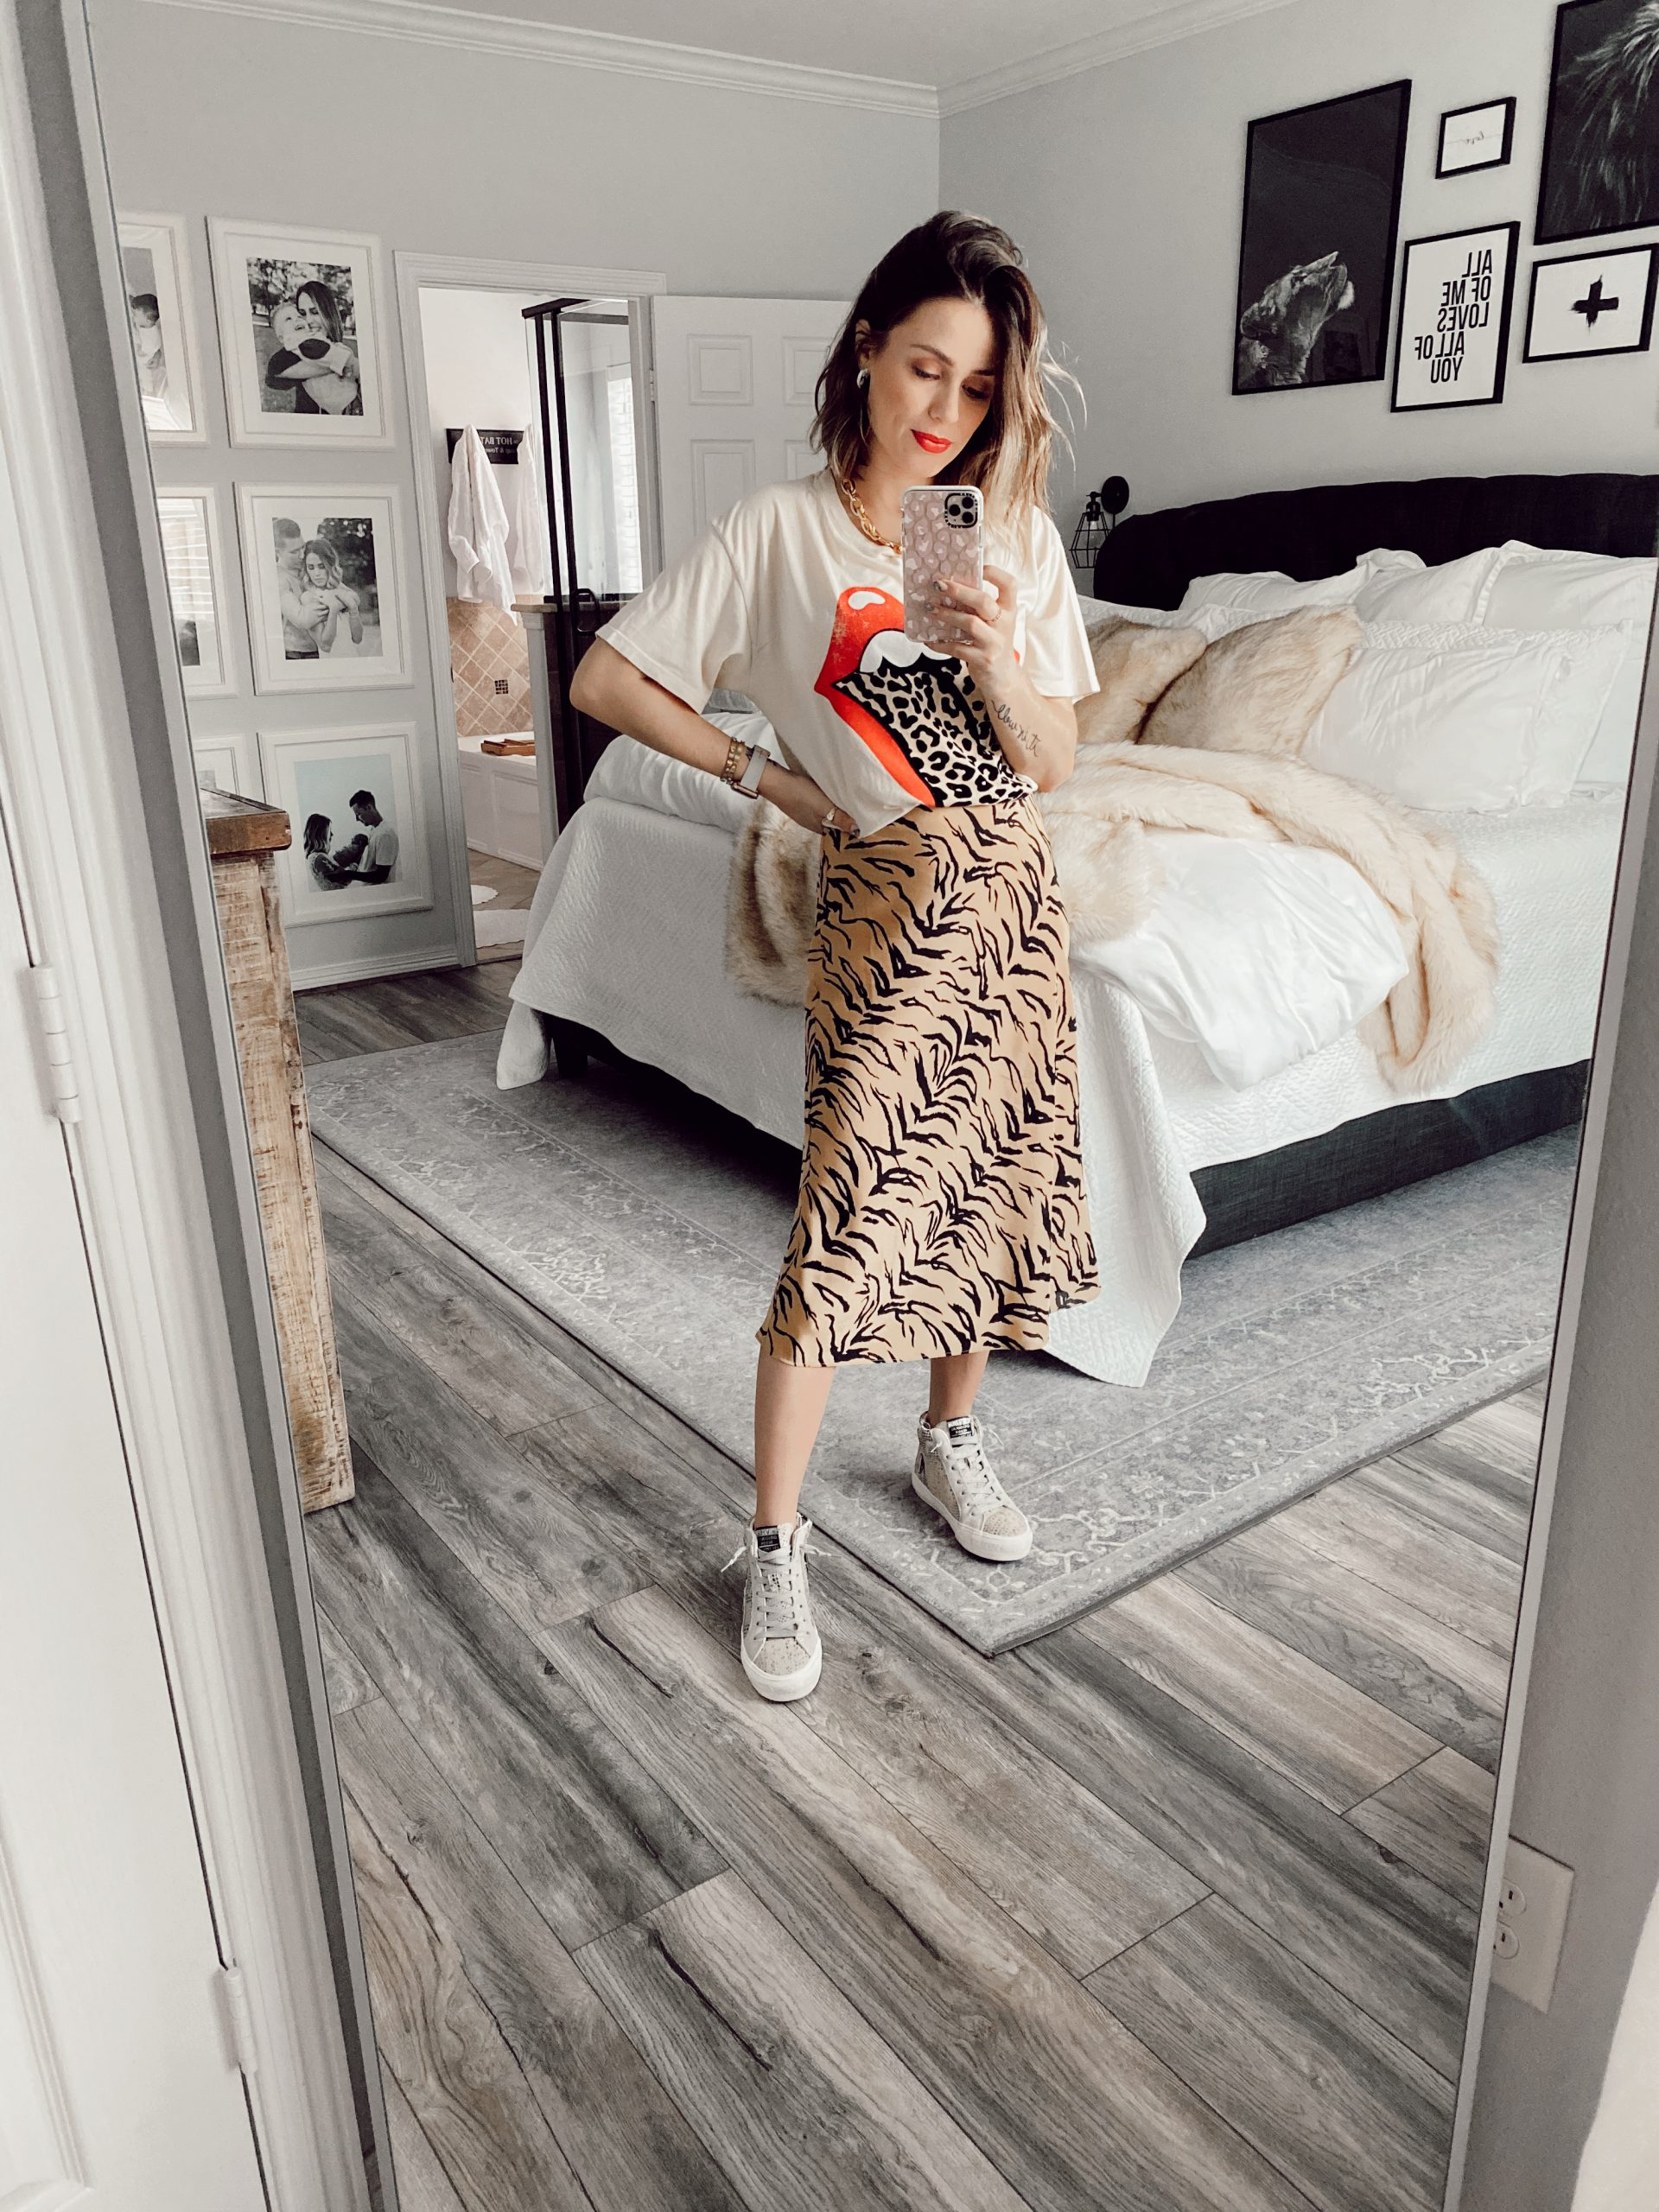 Houston fashion blogger Elly brown wears a Madewell Midi skirt paired with a graphic leopard tee